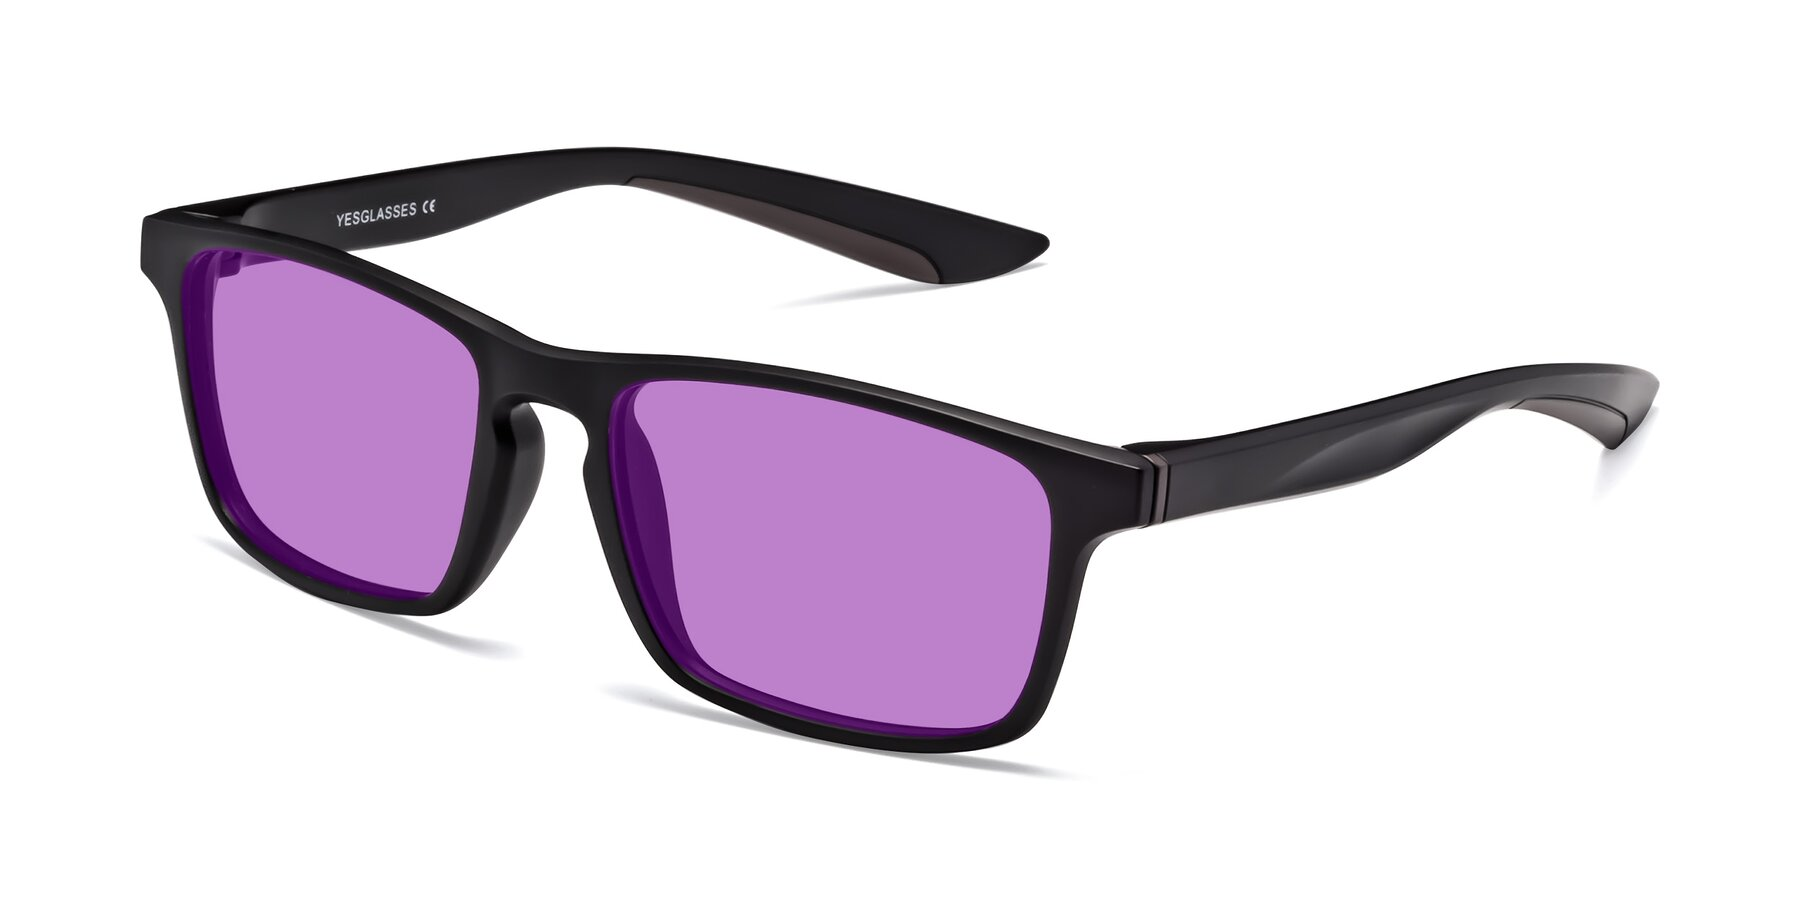 Angle of Passion in Matte Black-Coffee with Medium Purple Tinted Lenses